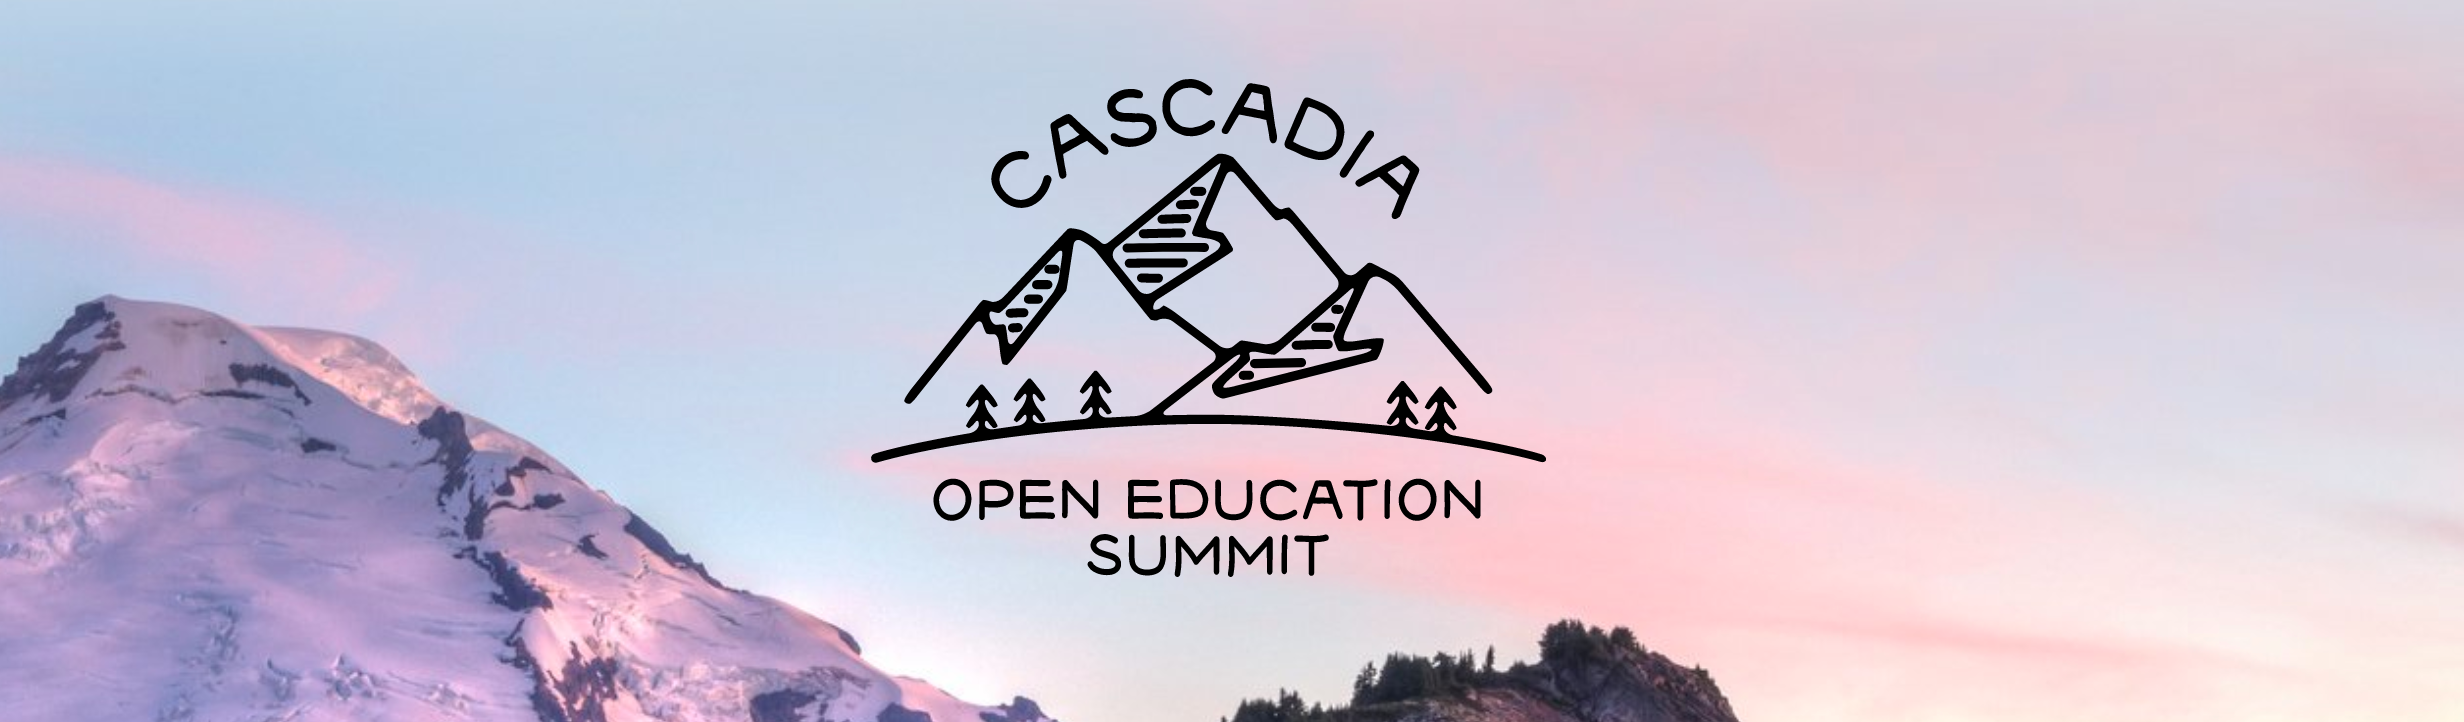 Cascadia OpenEd conference